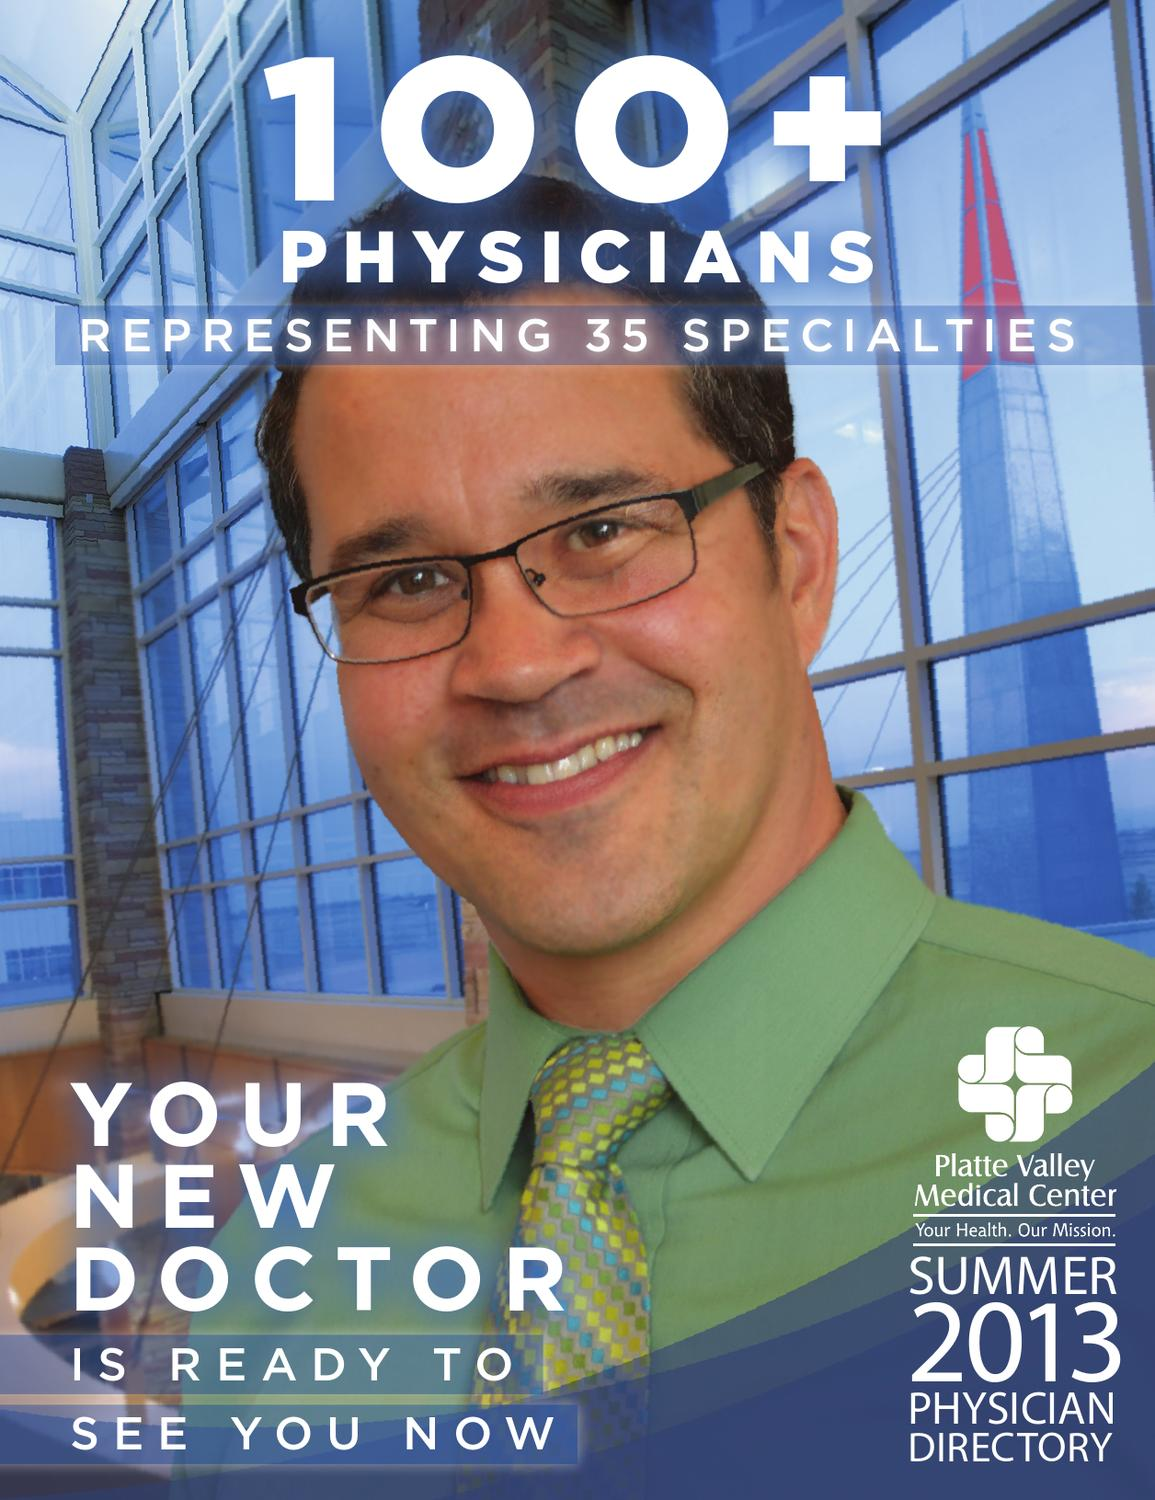 Physician Directory - Summer 2013 by Charmaine Weis - issuu